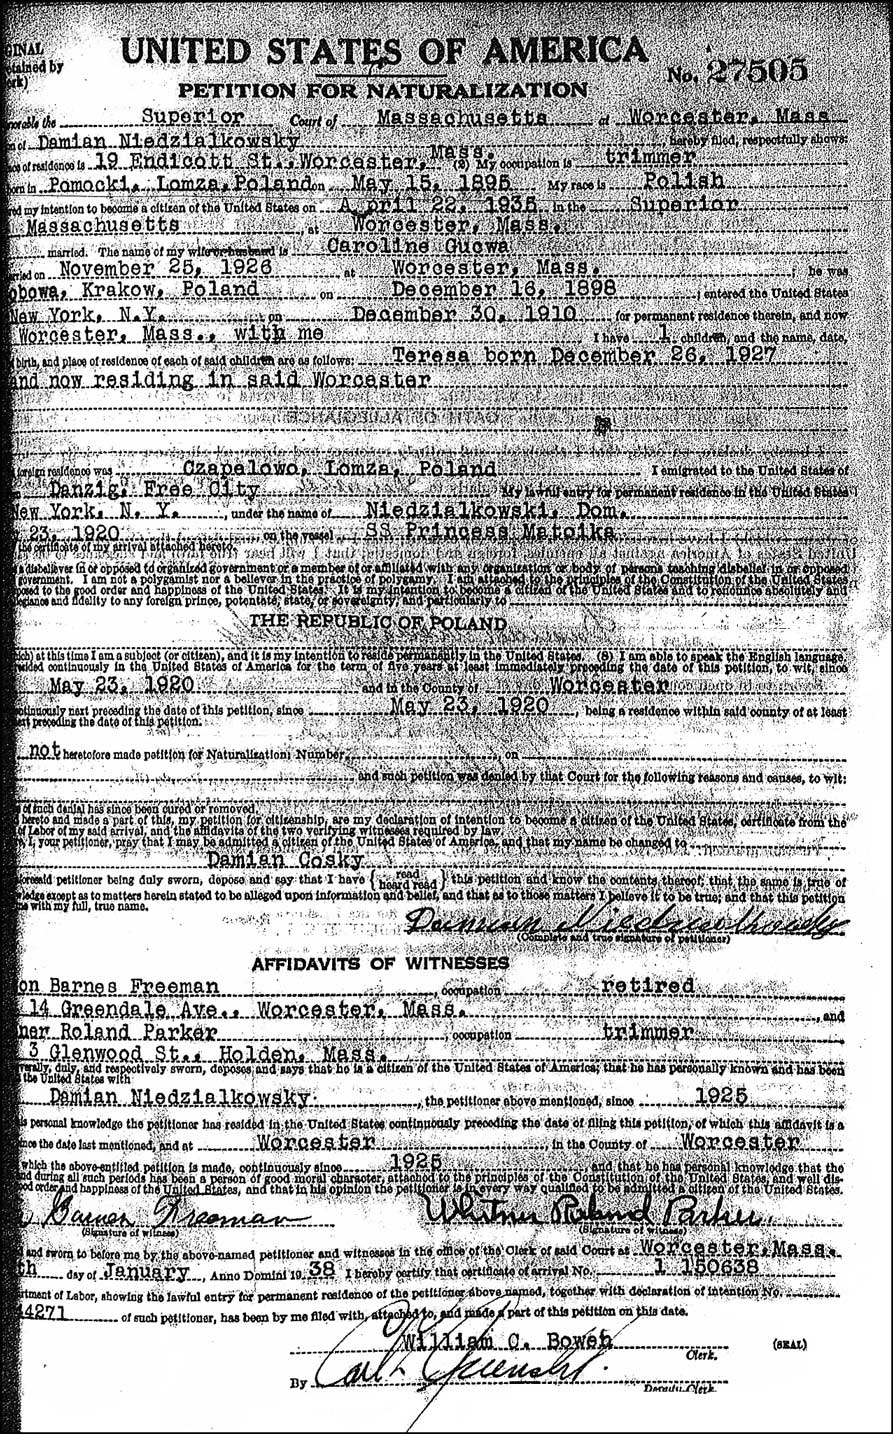 The Petition for Naturalization of Damian Niedzialkowski - 1938 obverse